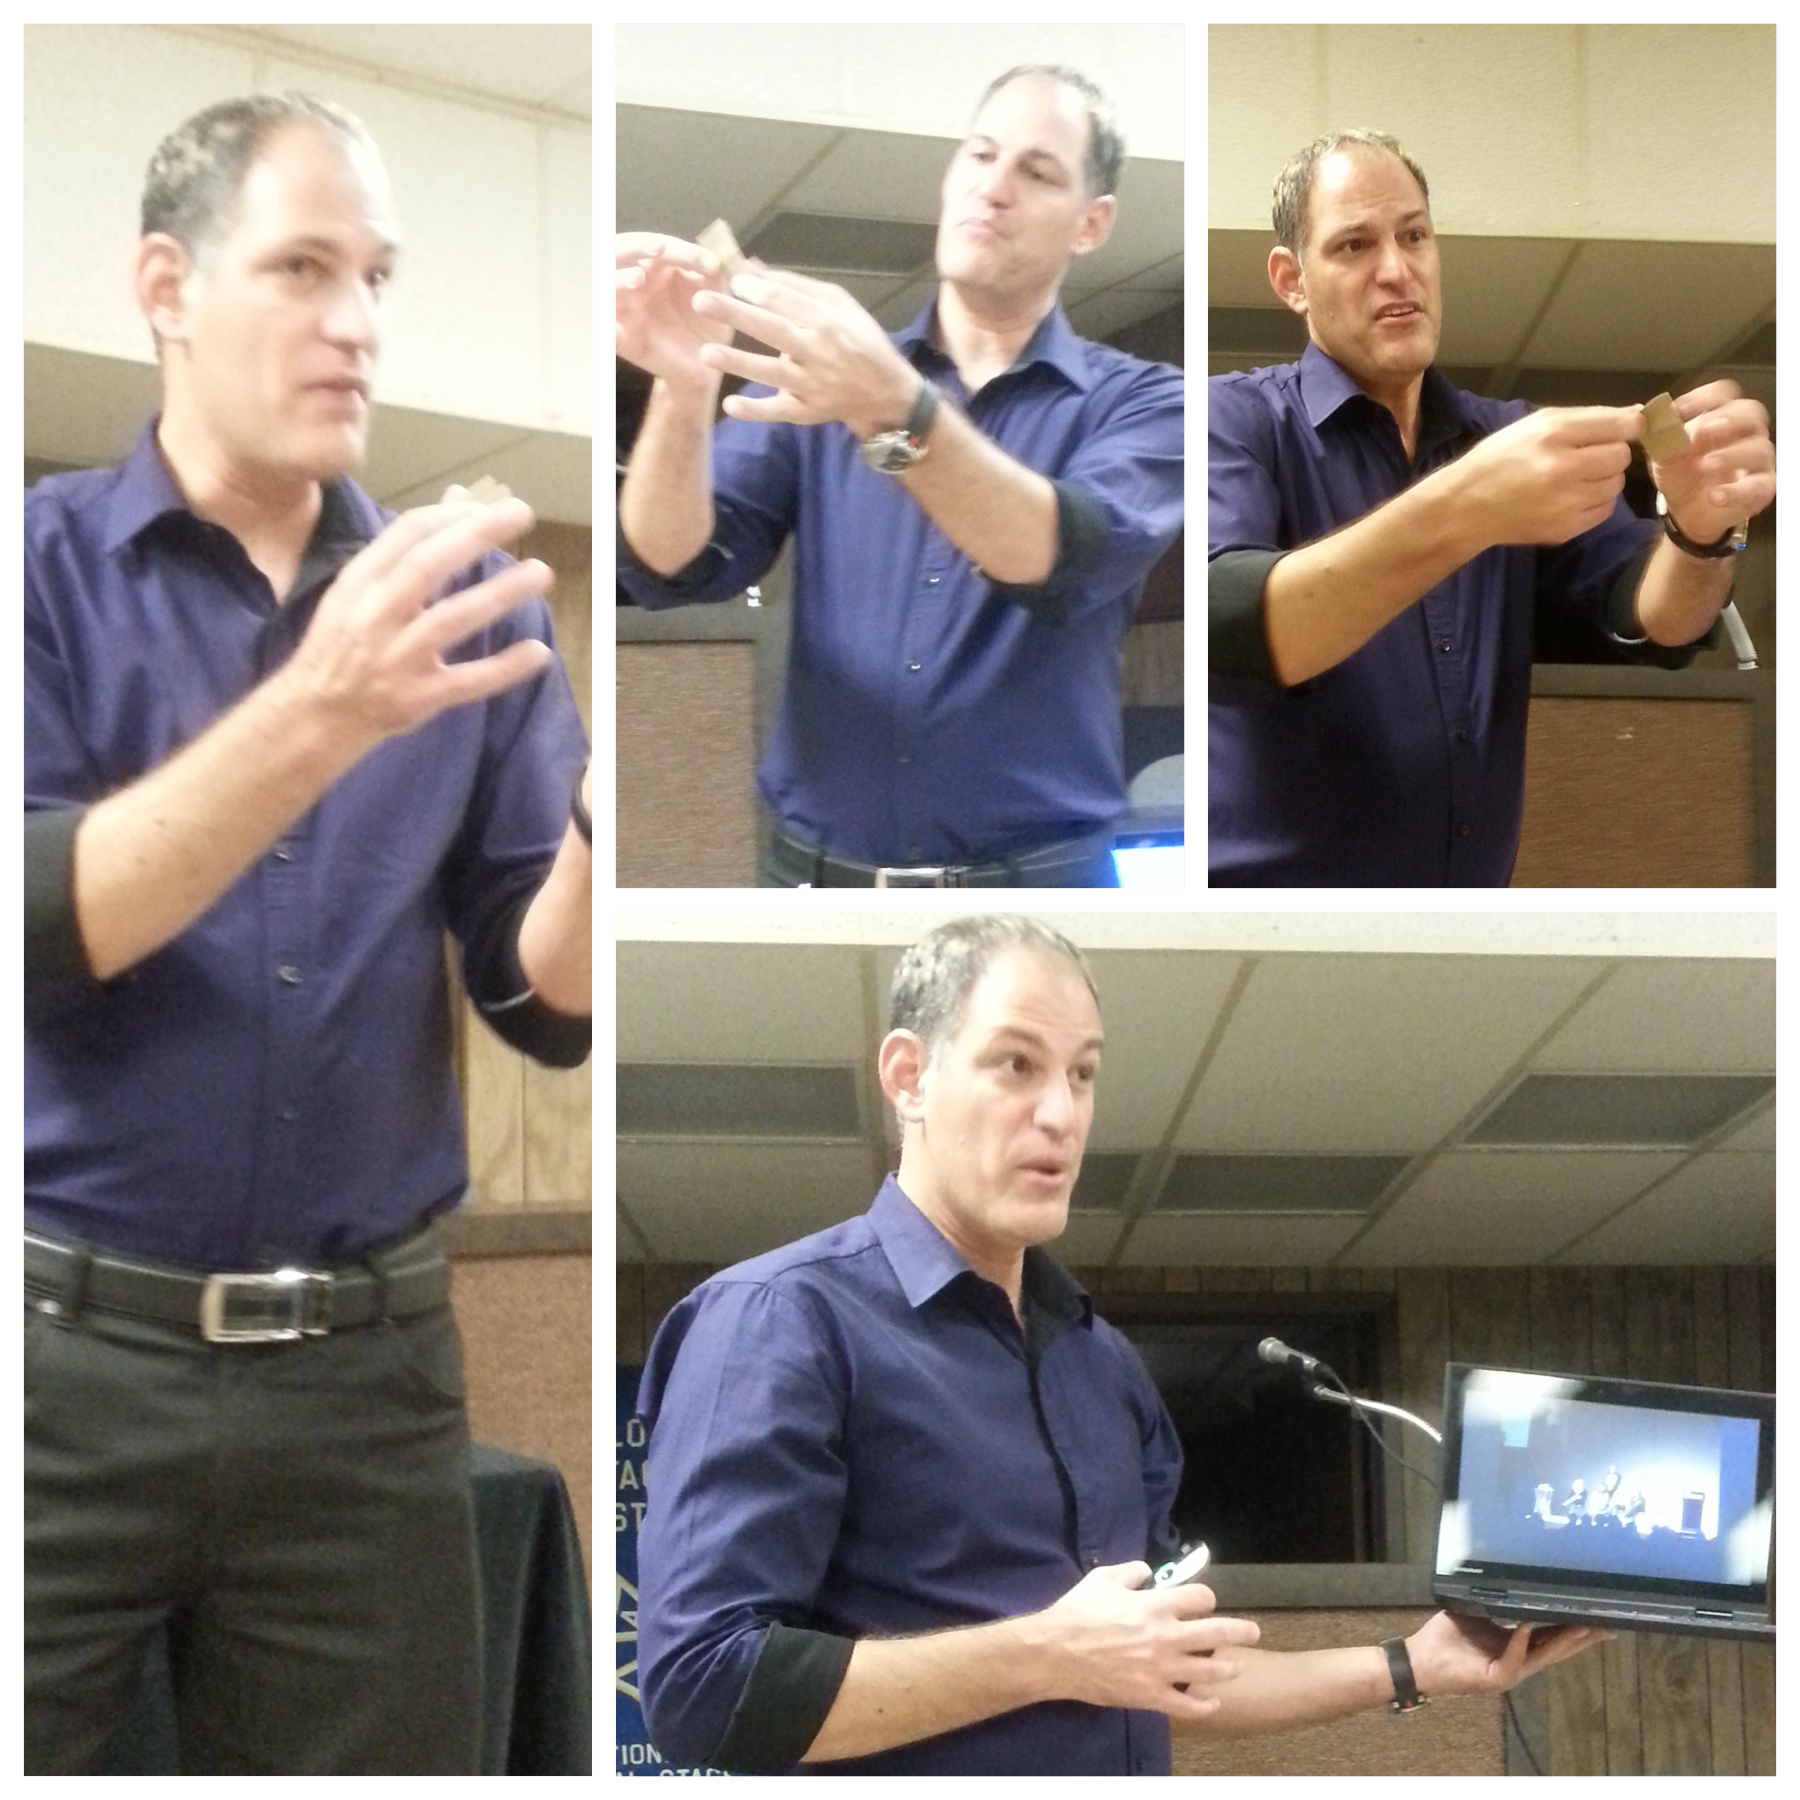 Candid photos of Roy during his lecture here in Houston.